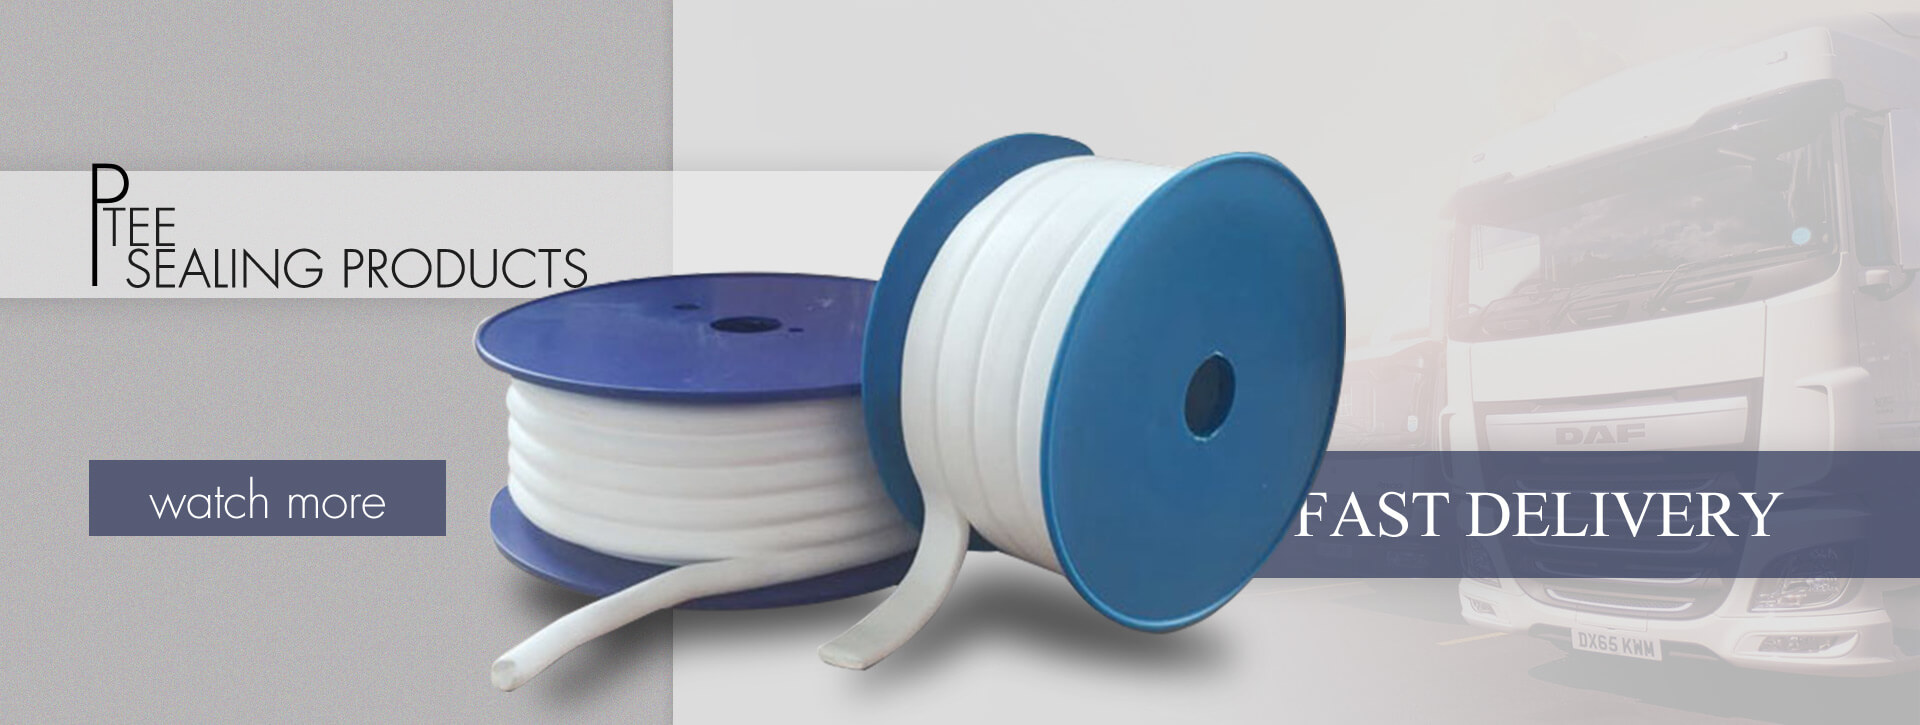 The usage of expanded PTFE tape